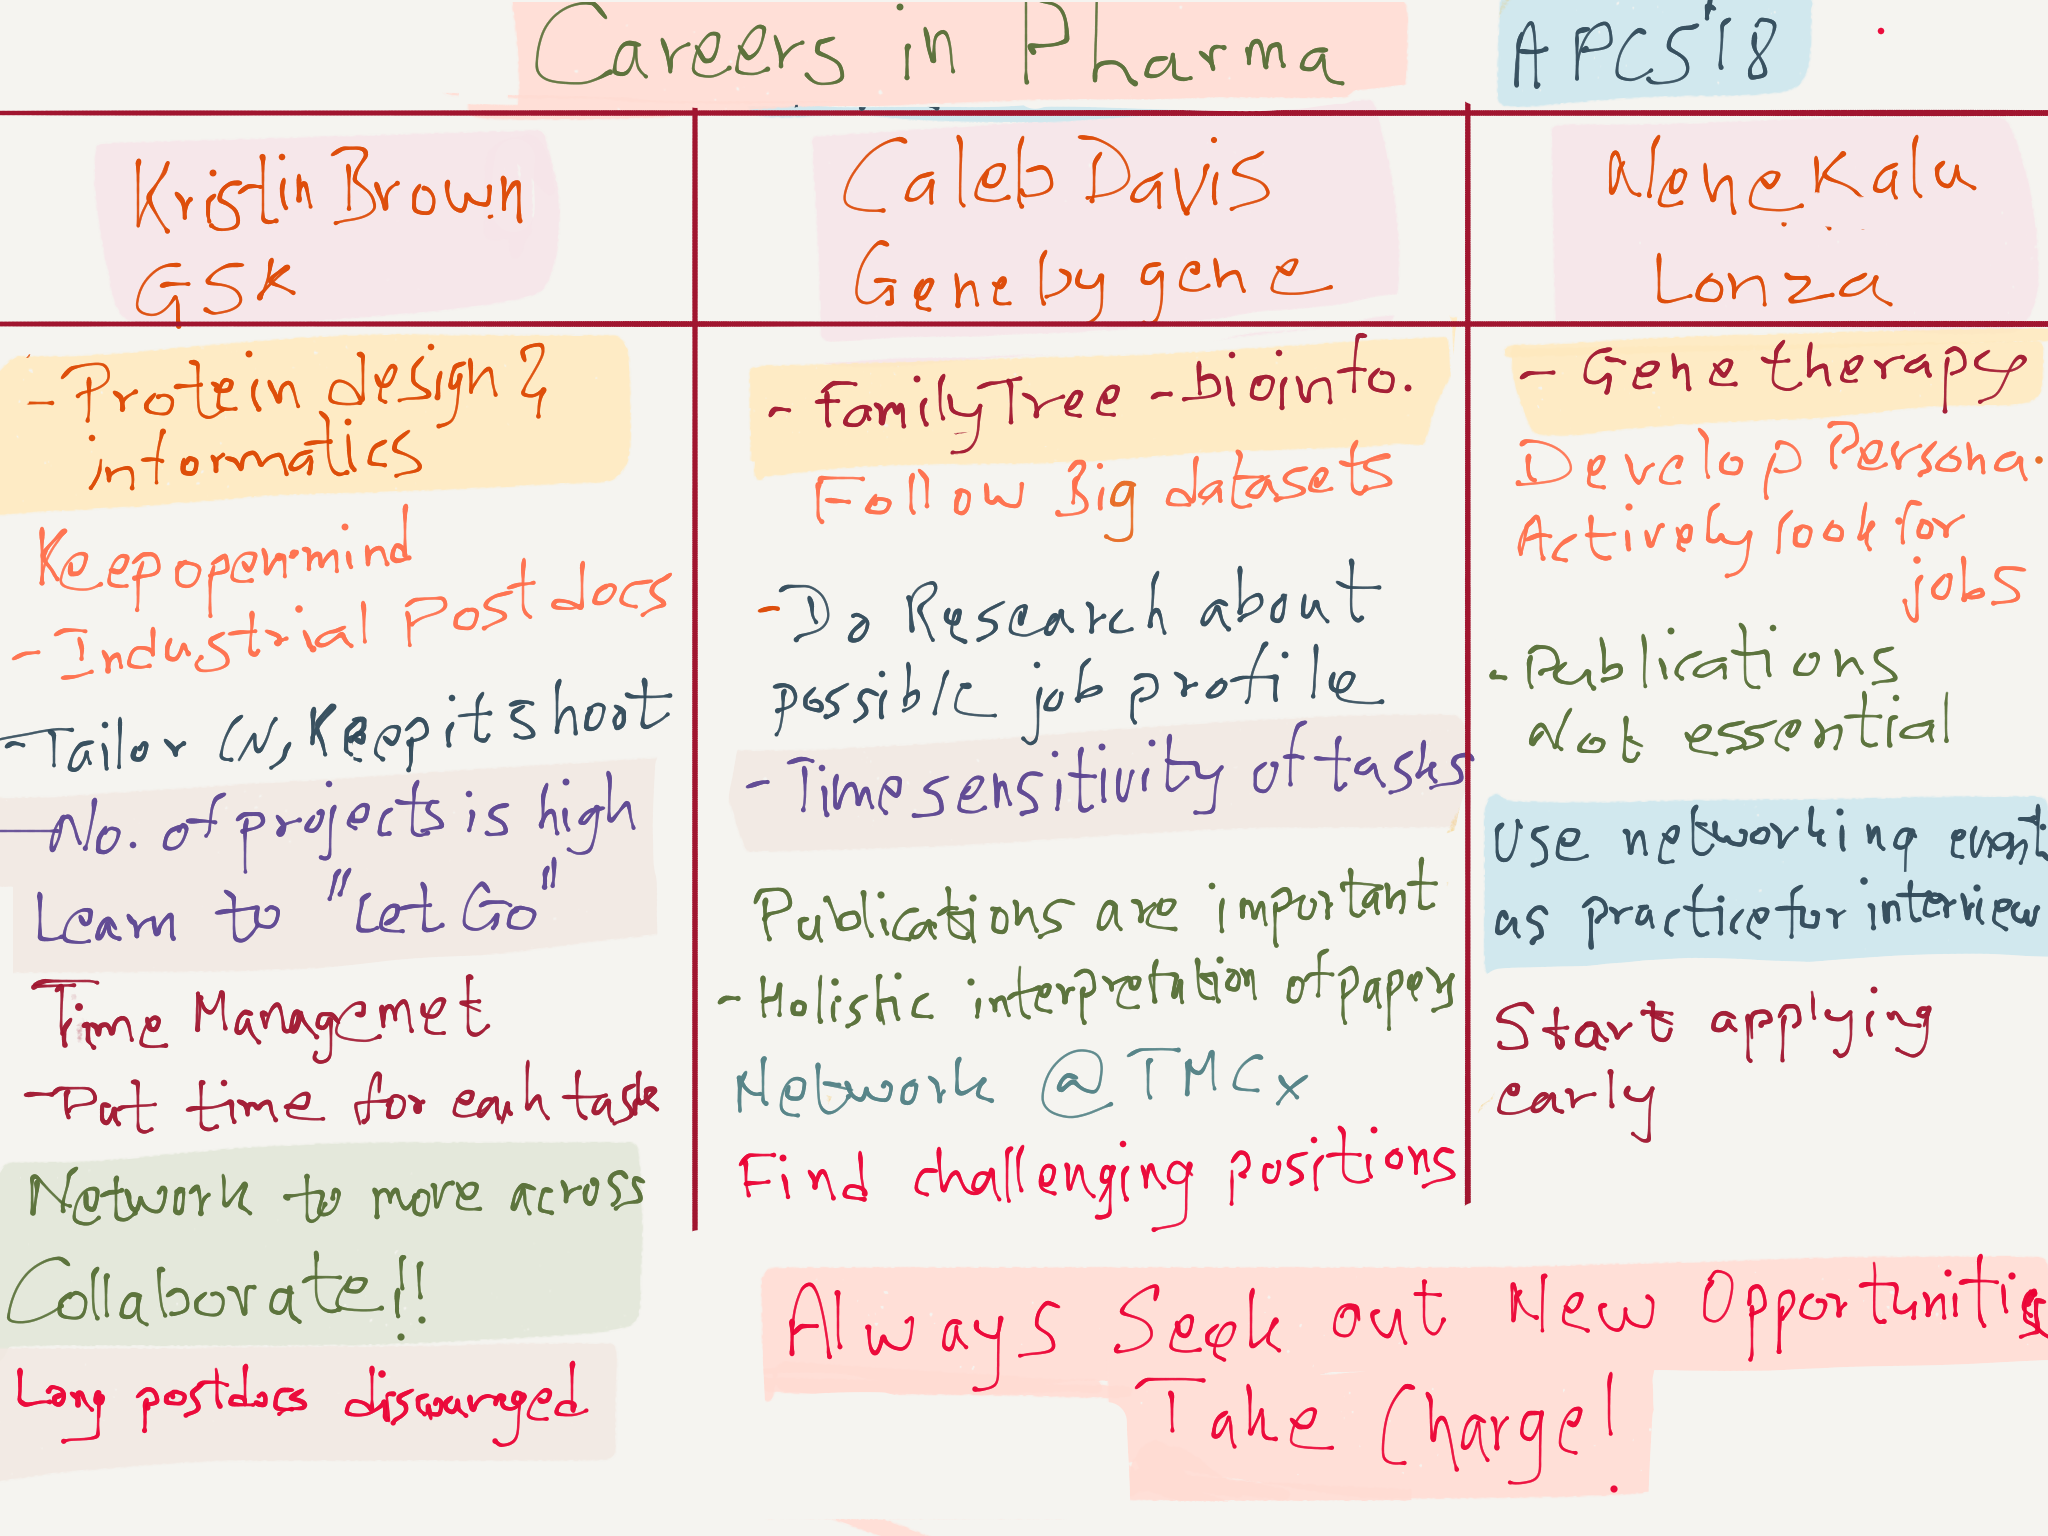 APCS- Careers in Pharma.png